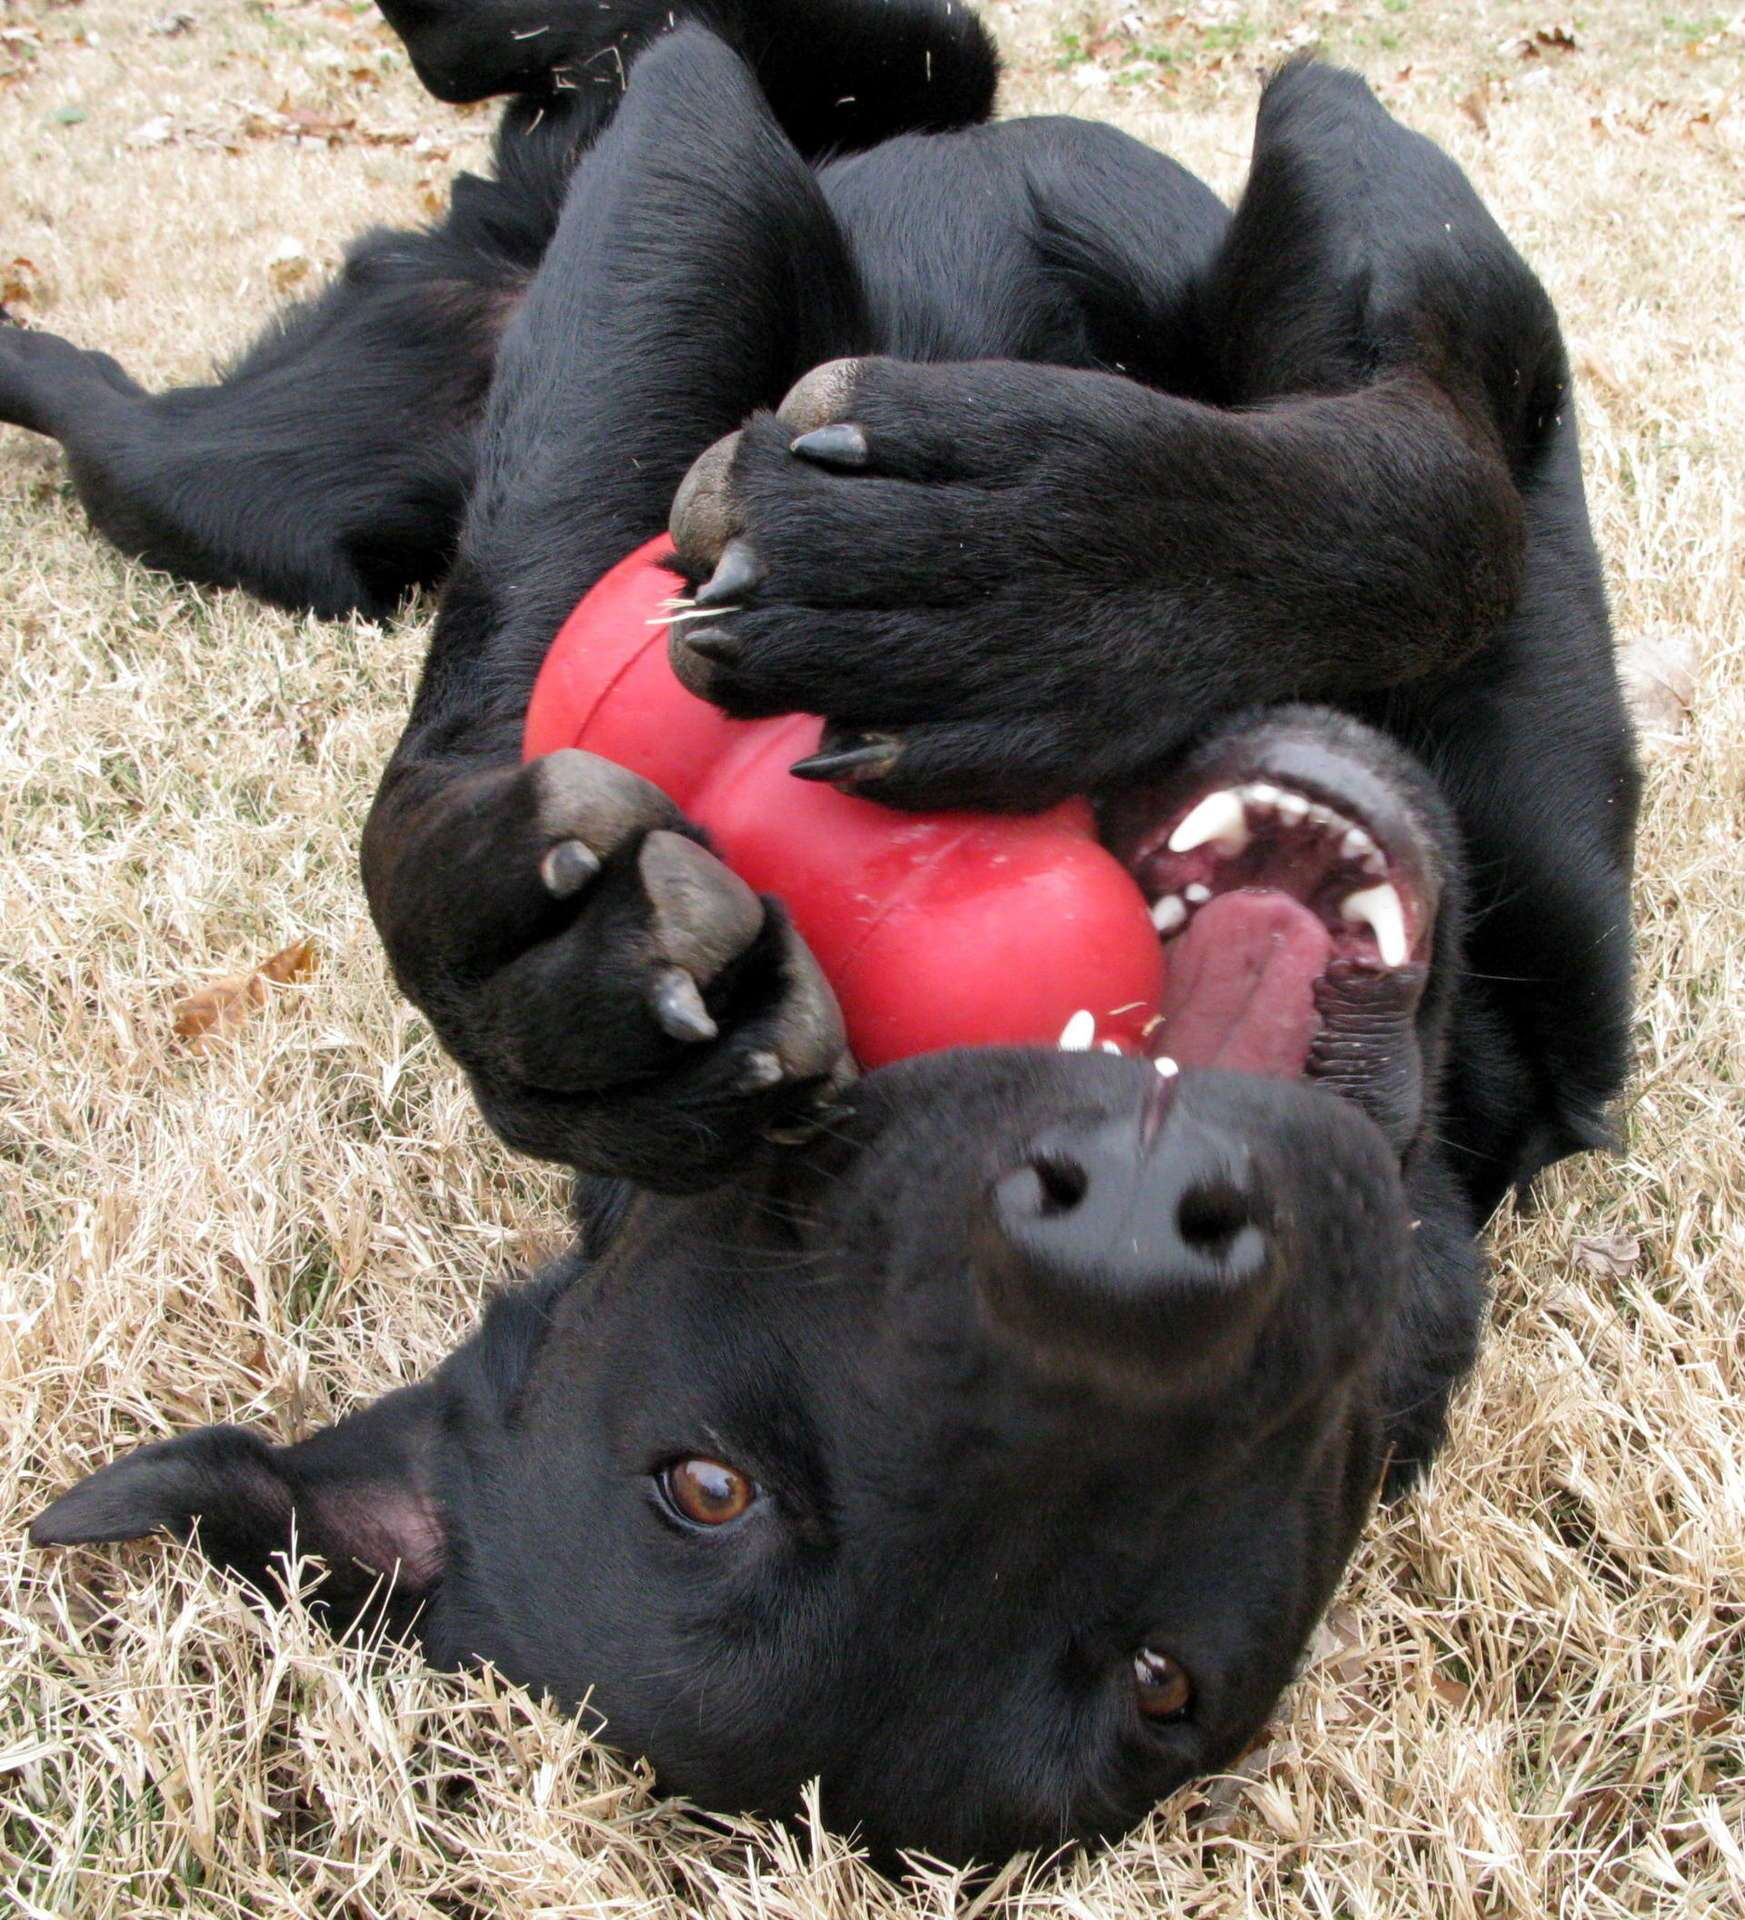 A Kong toy is an acceptable and durable chew toy. Photo: OakleyOriginals